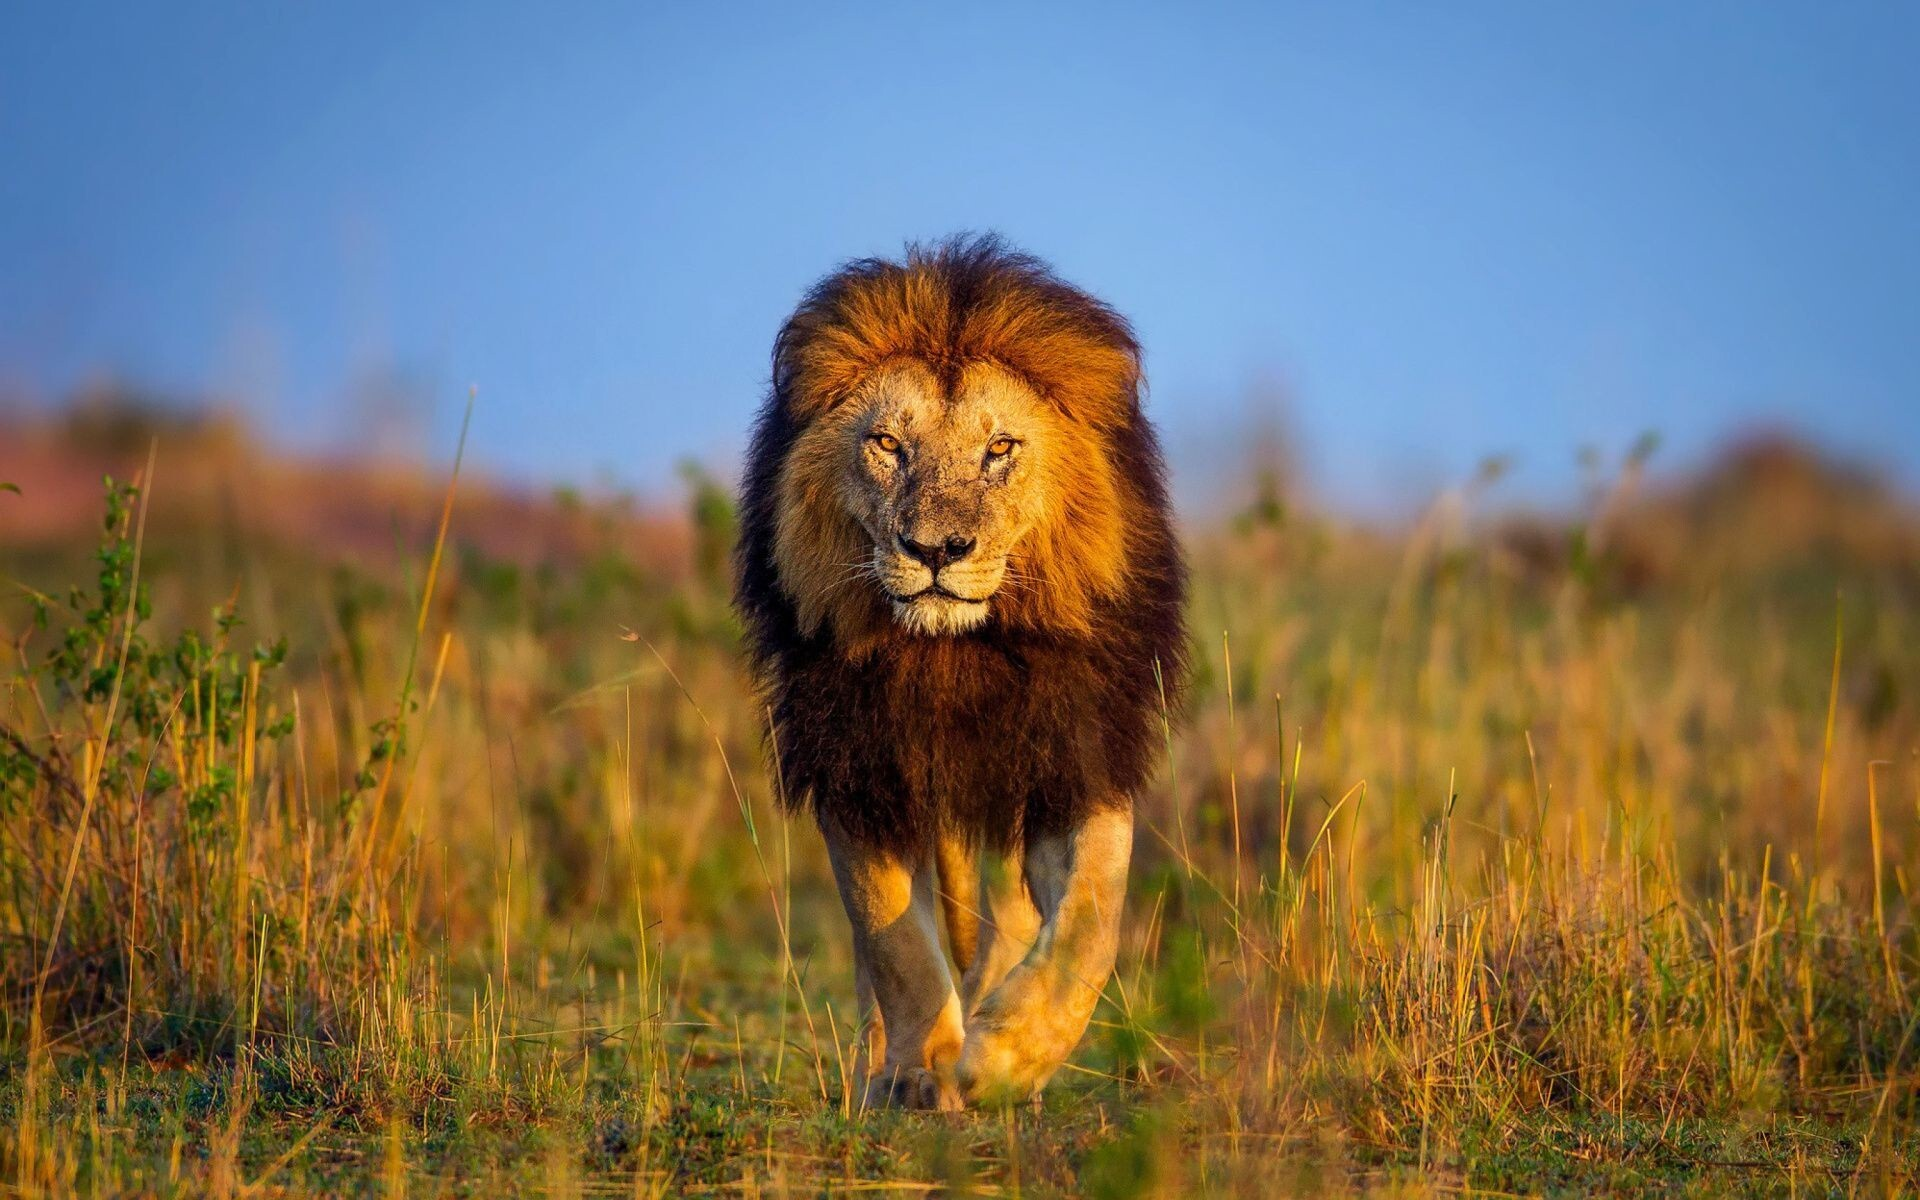 Big Lion Walking In Jungle Hd Wallpapers